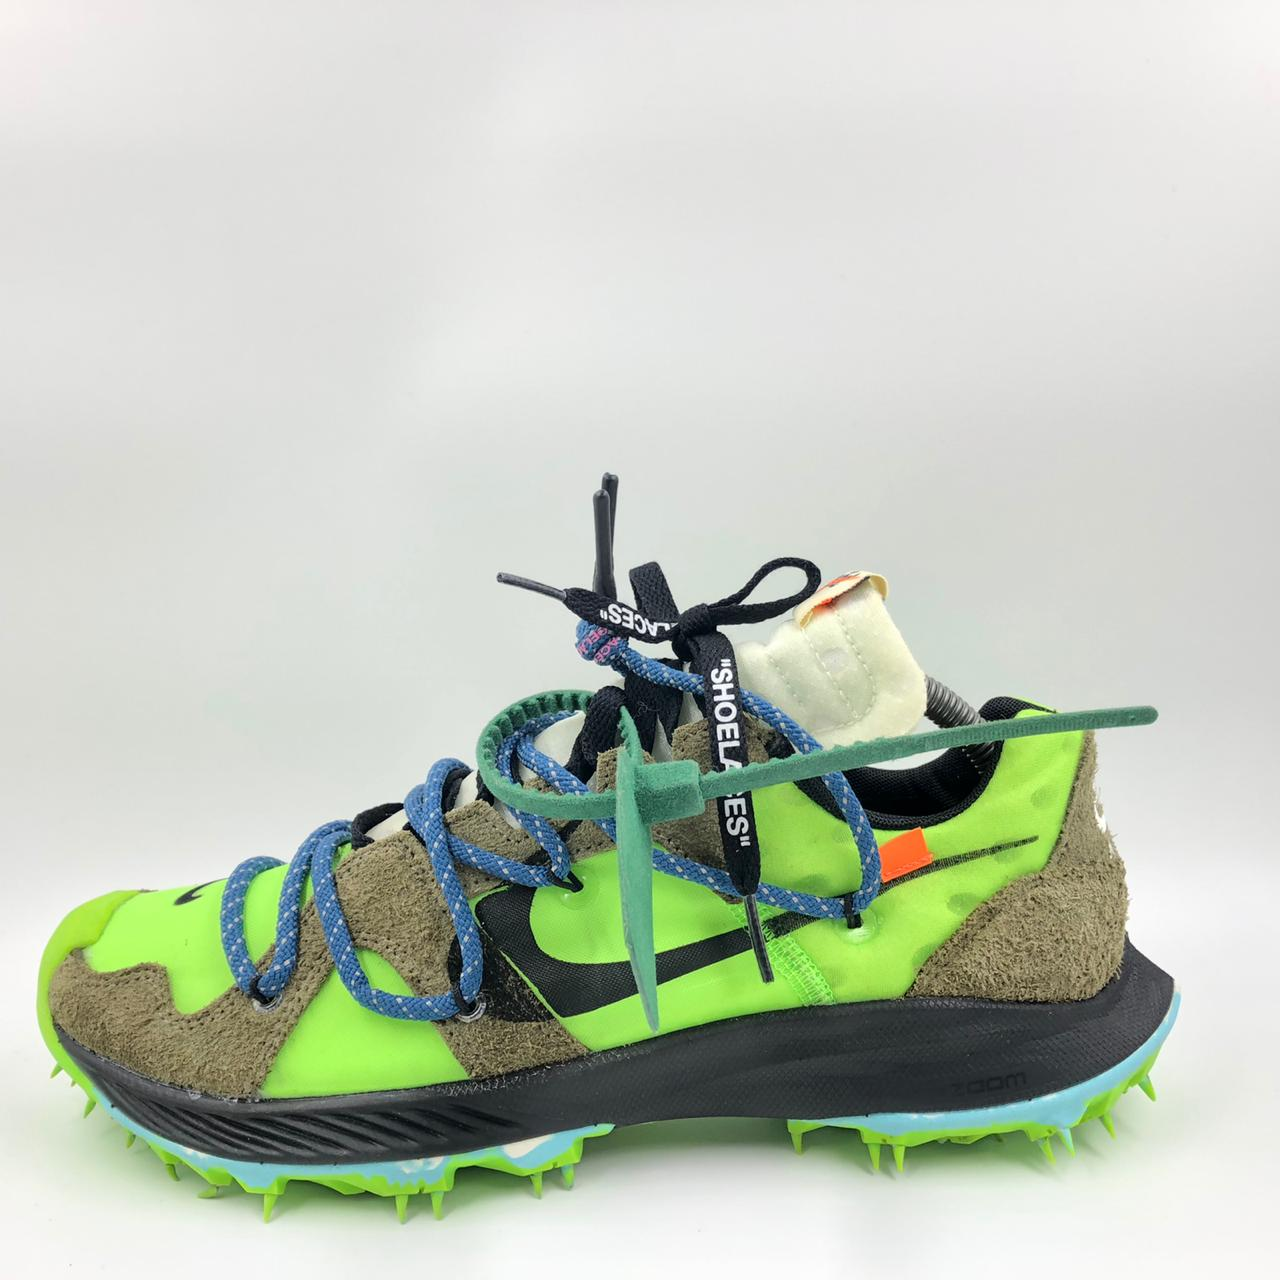 Nike Zoom Terra Kiger 5 OFF-WHITE Electric Green (W)